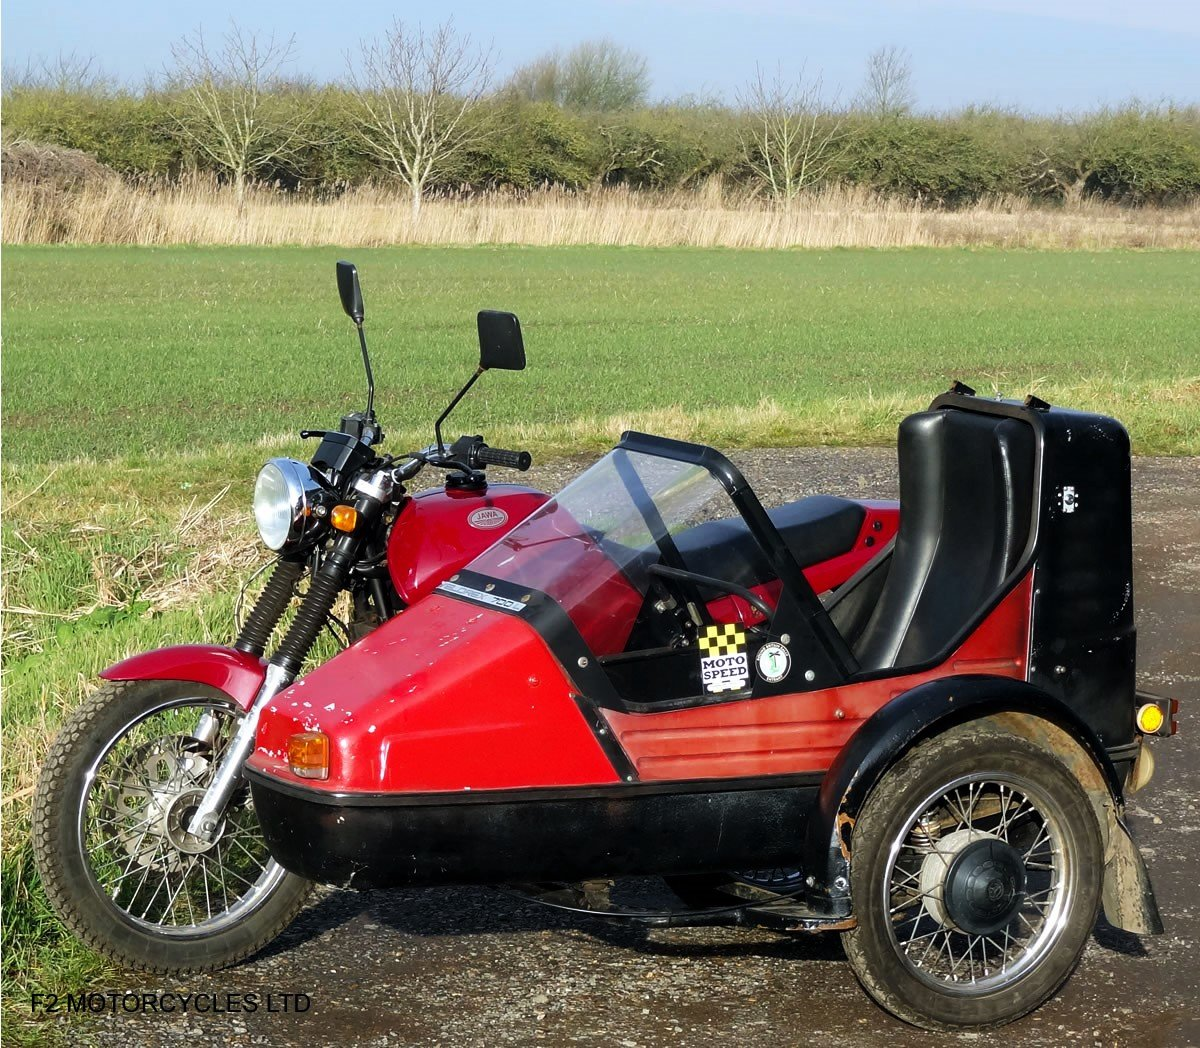 2014 Jawa 350 2-stroke with sidecar, Moted and ready to ride SOLD (picture 4 of 6)